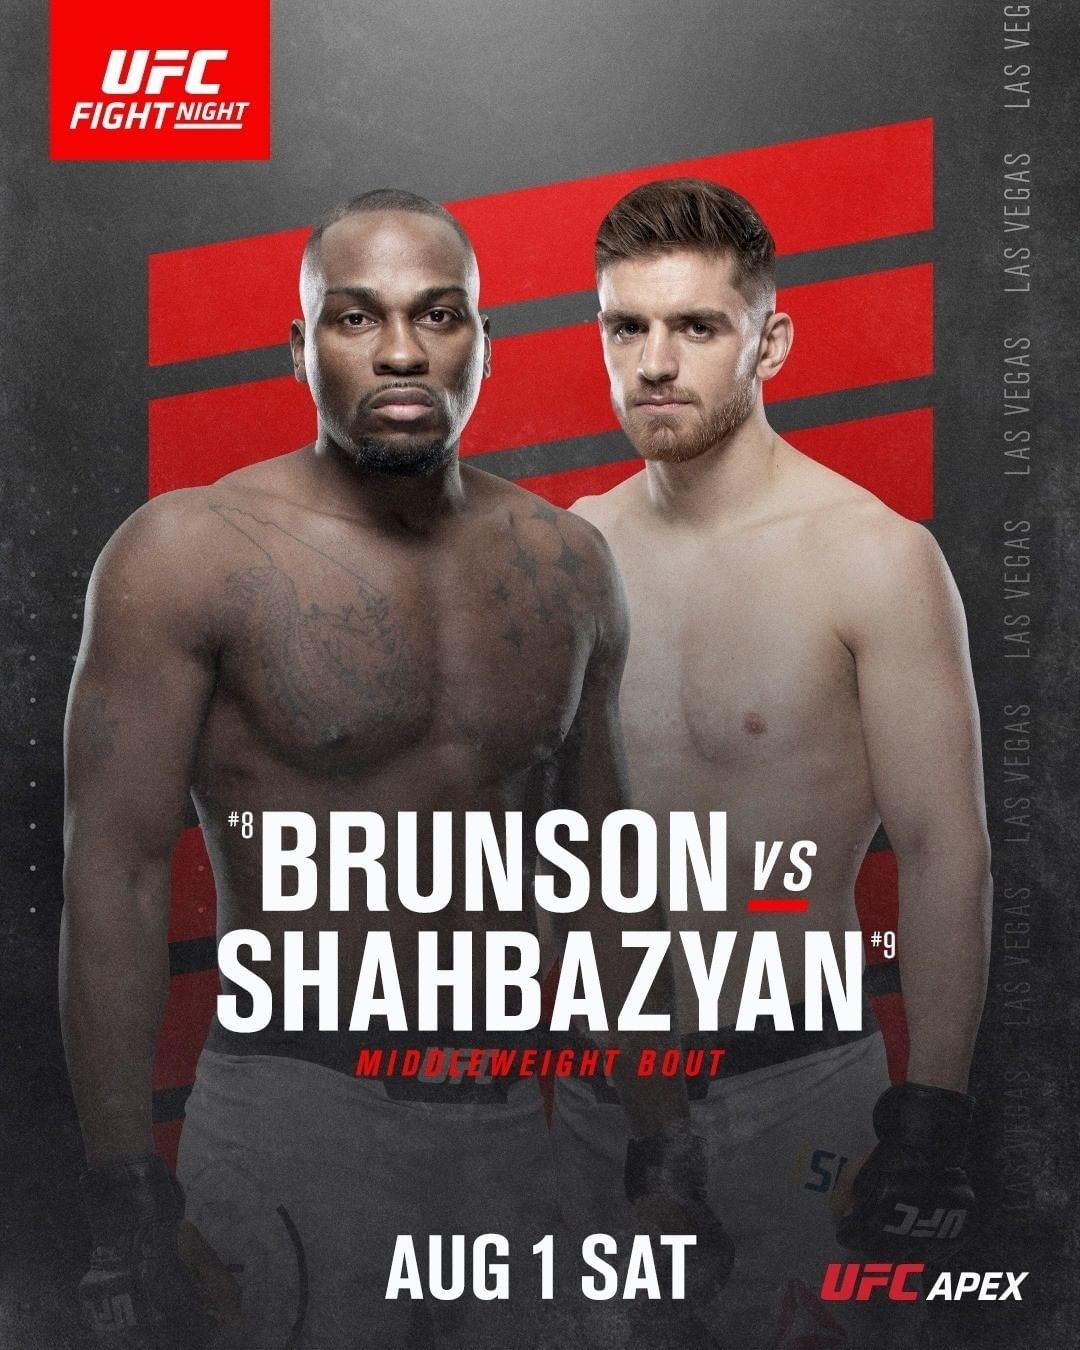 poster for UFC Fight Night 173